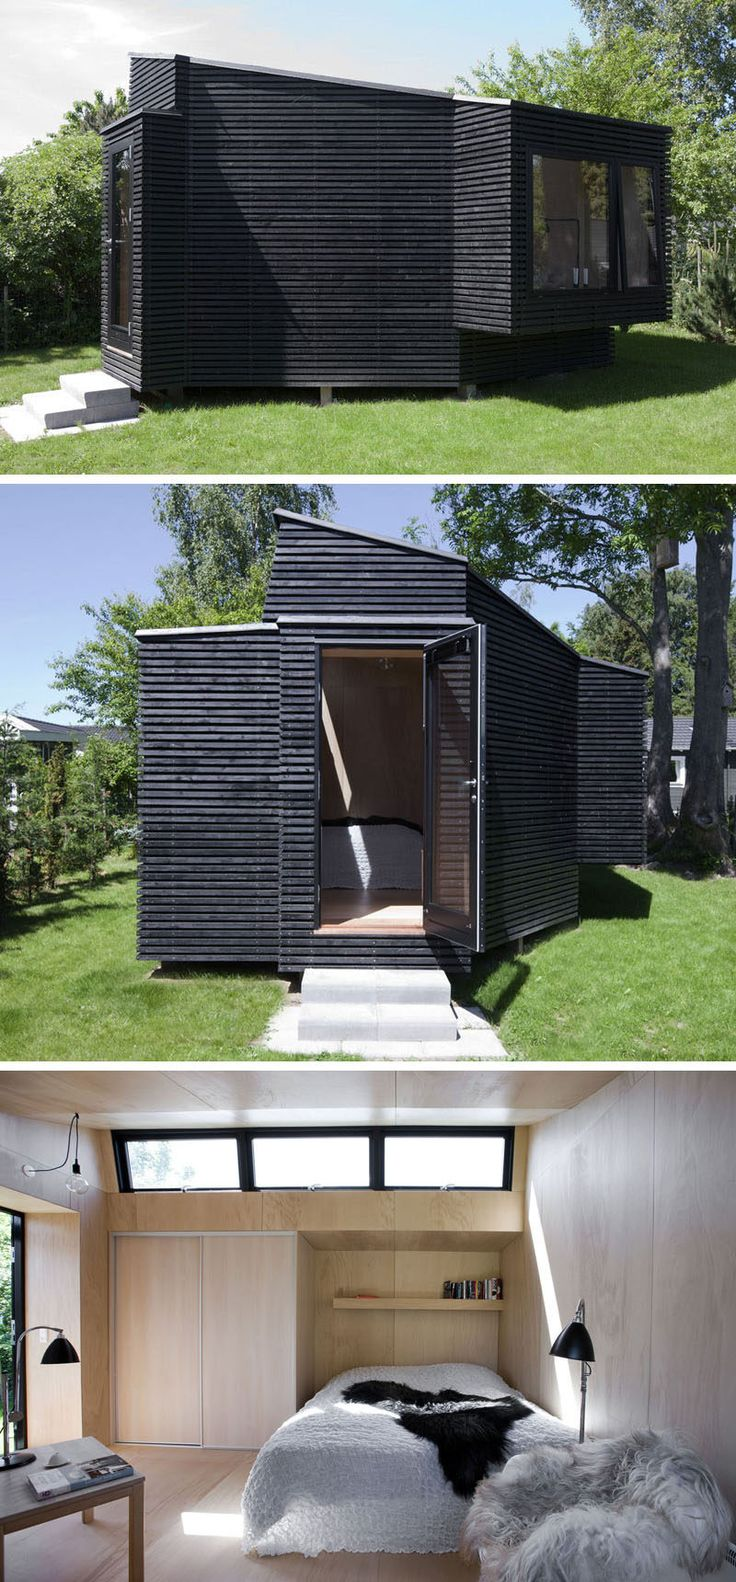 Clad in black timber, this backyard guest house is just the right size for a visiting friend or family member, and features a number of windows that help keep the tiny home naturally bright and ventilated, as well as some closet space for people who are staying a little bit longer.